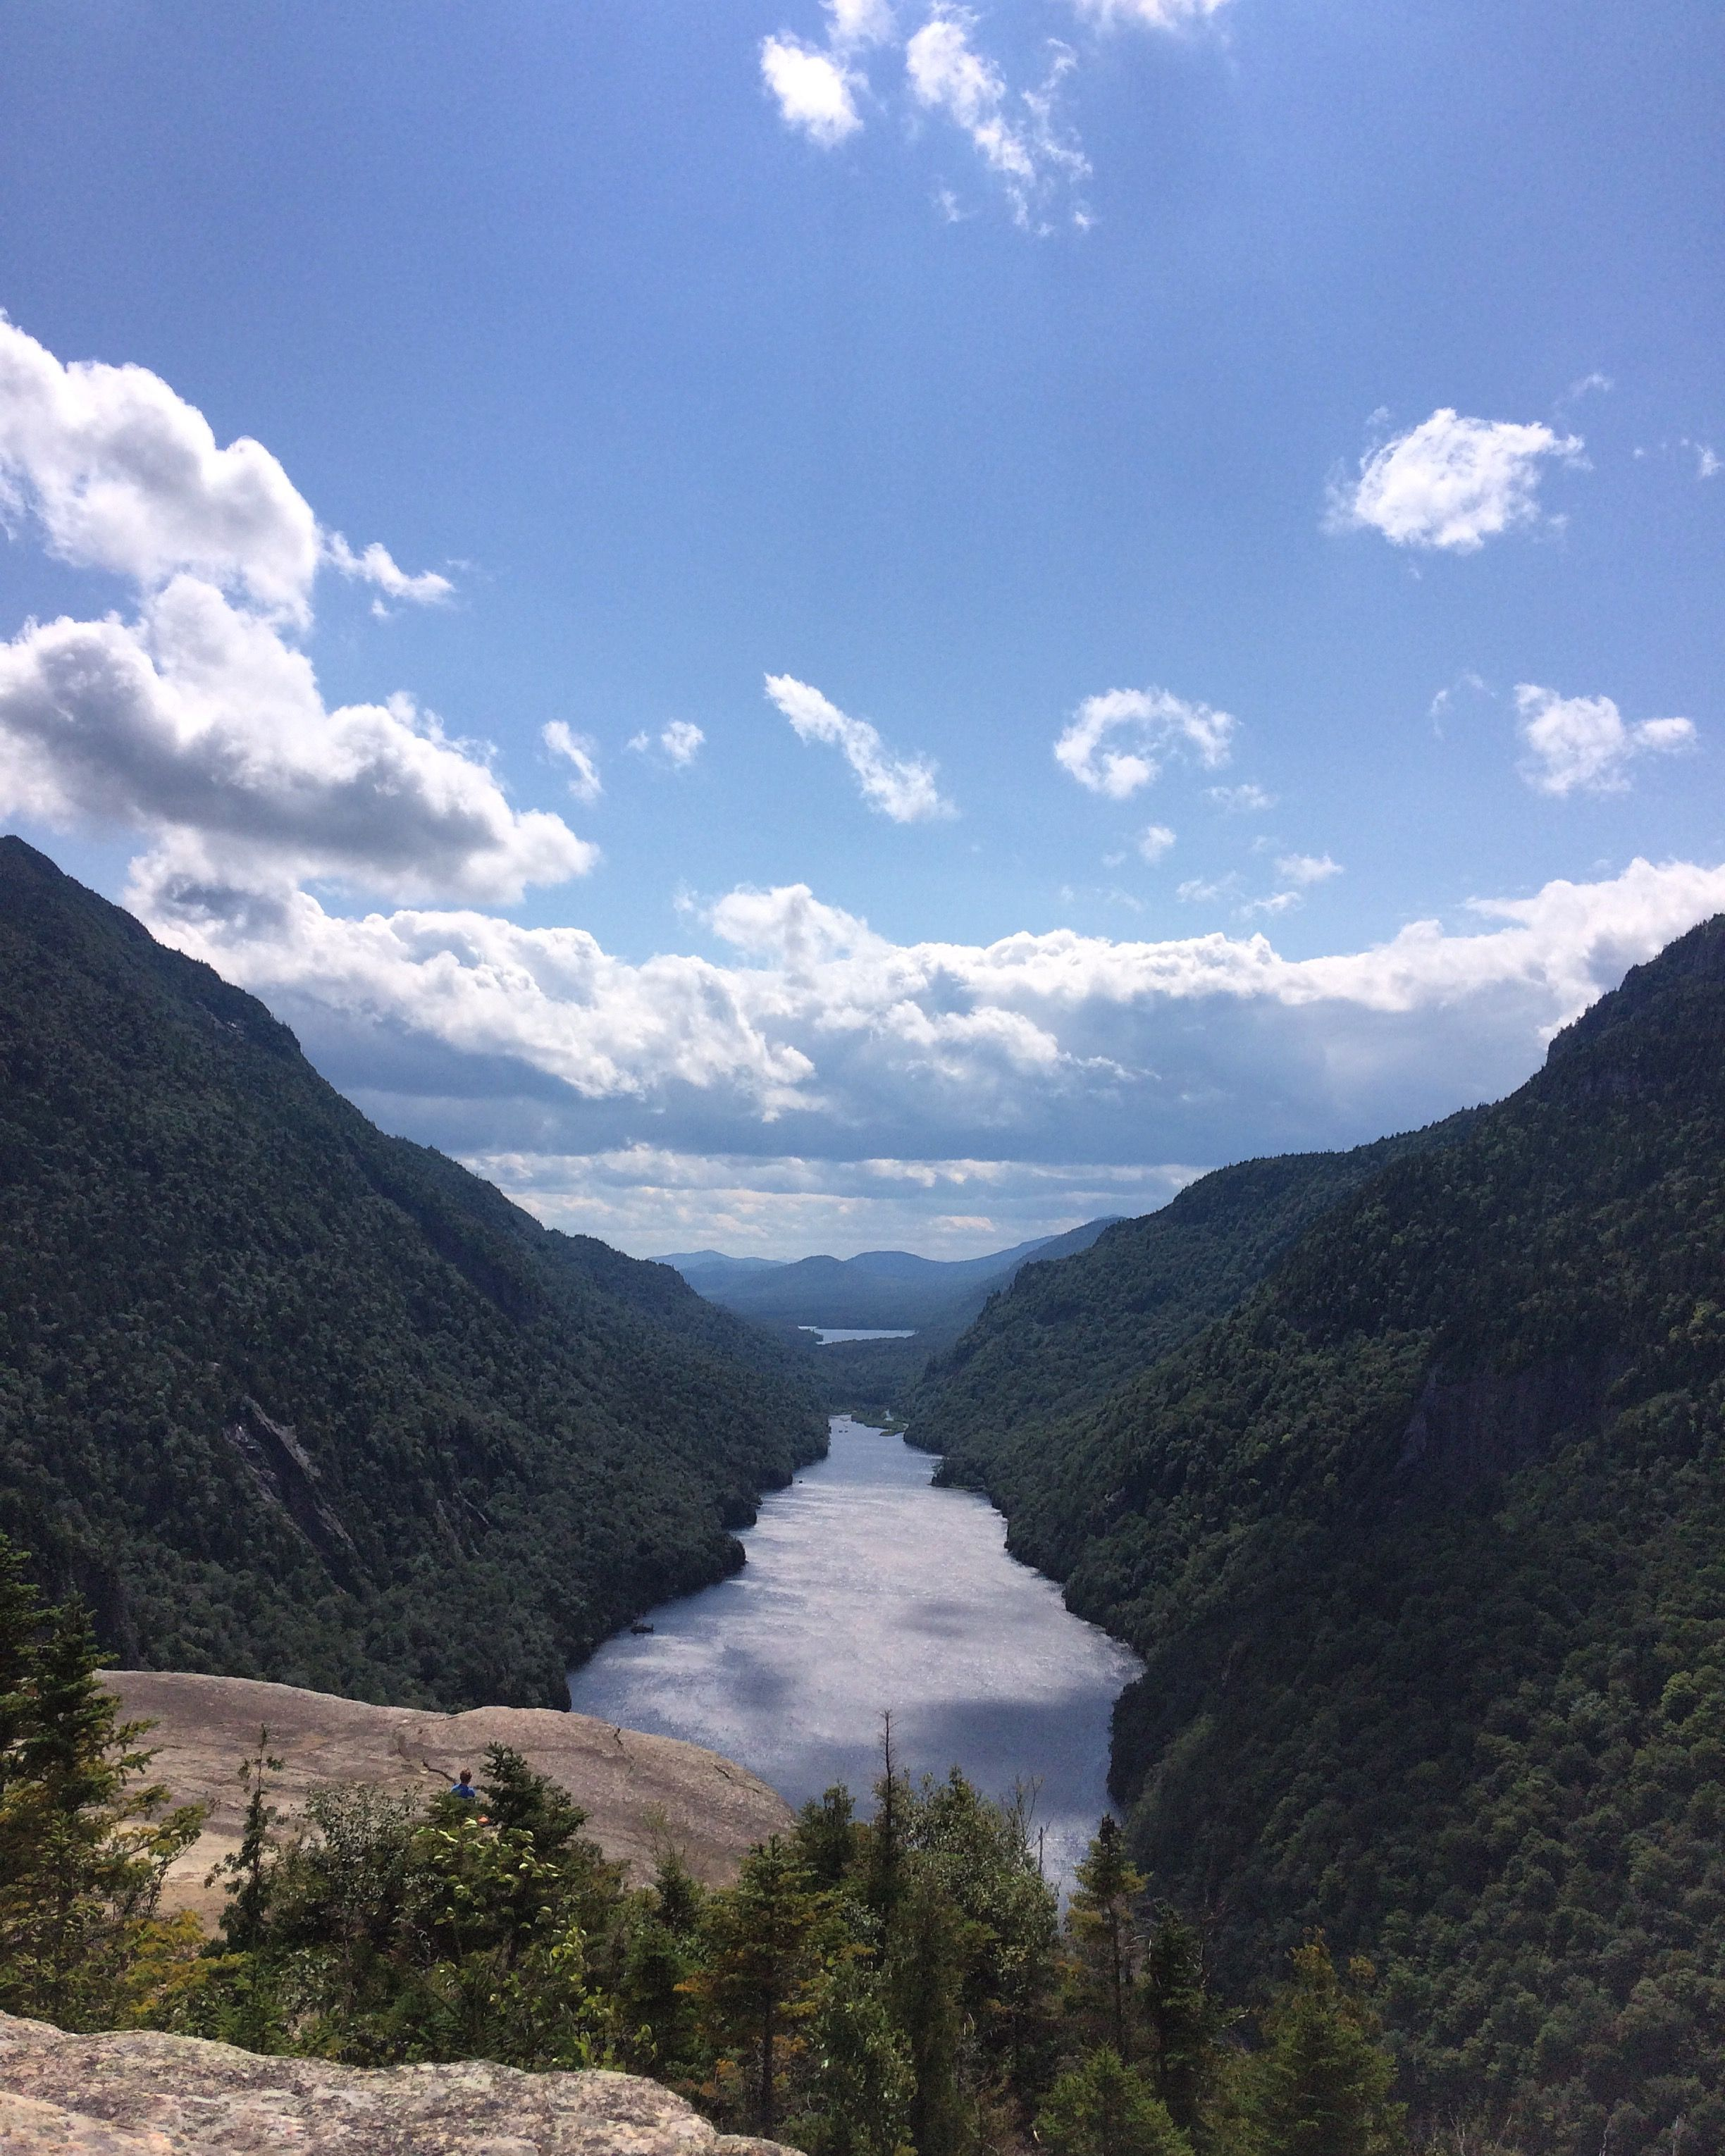 Hiking Chimney Mountain - Indian Lake, NY in the